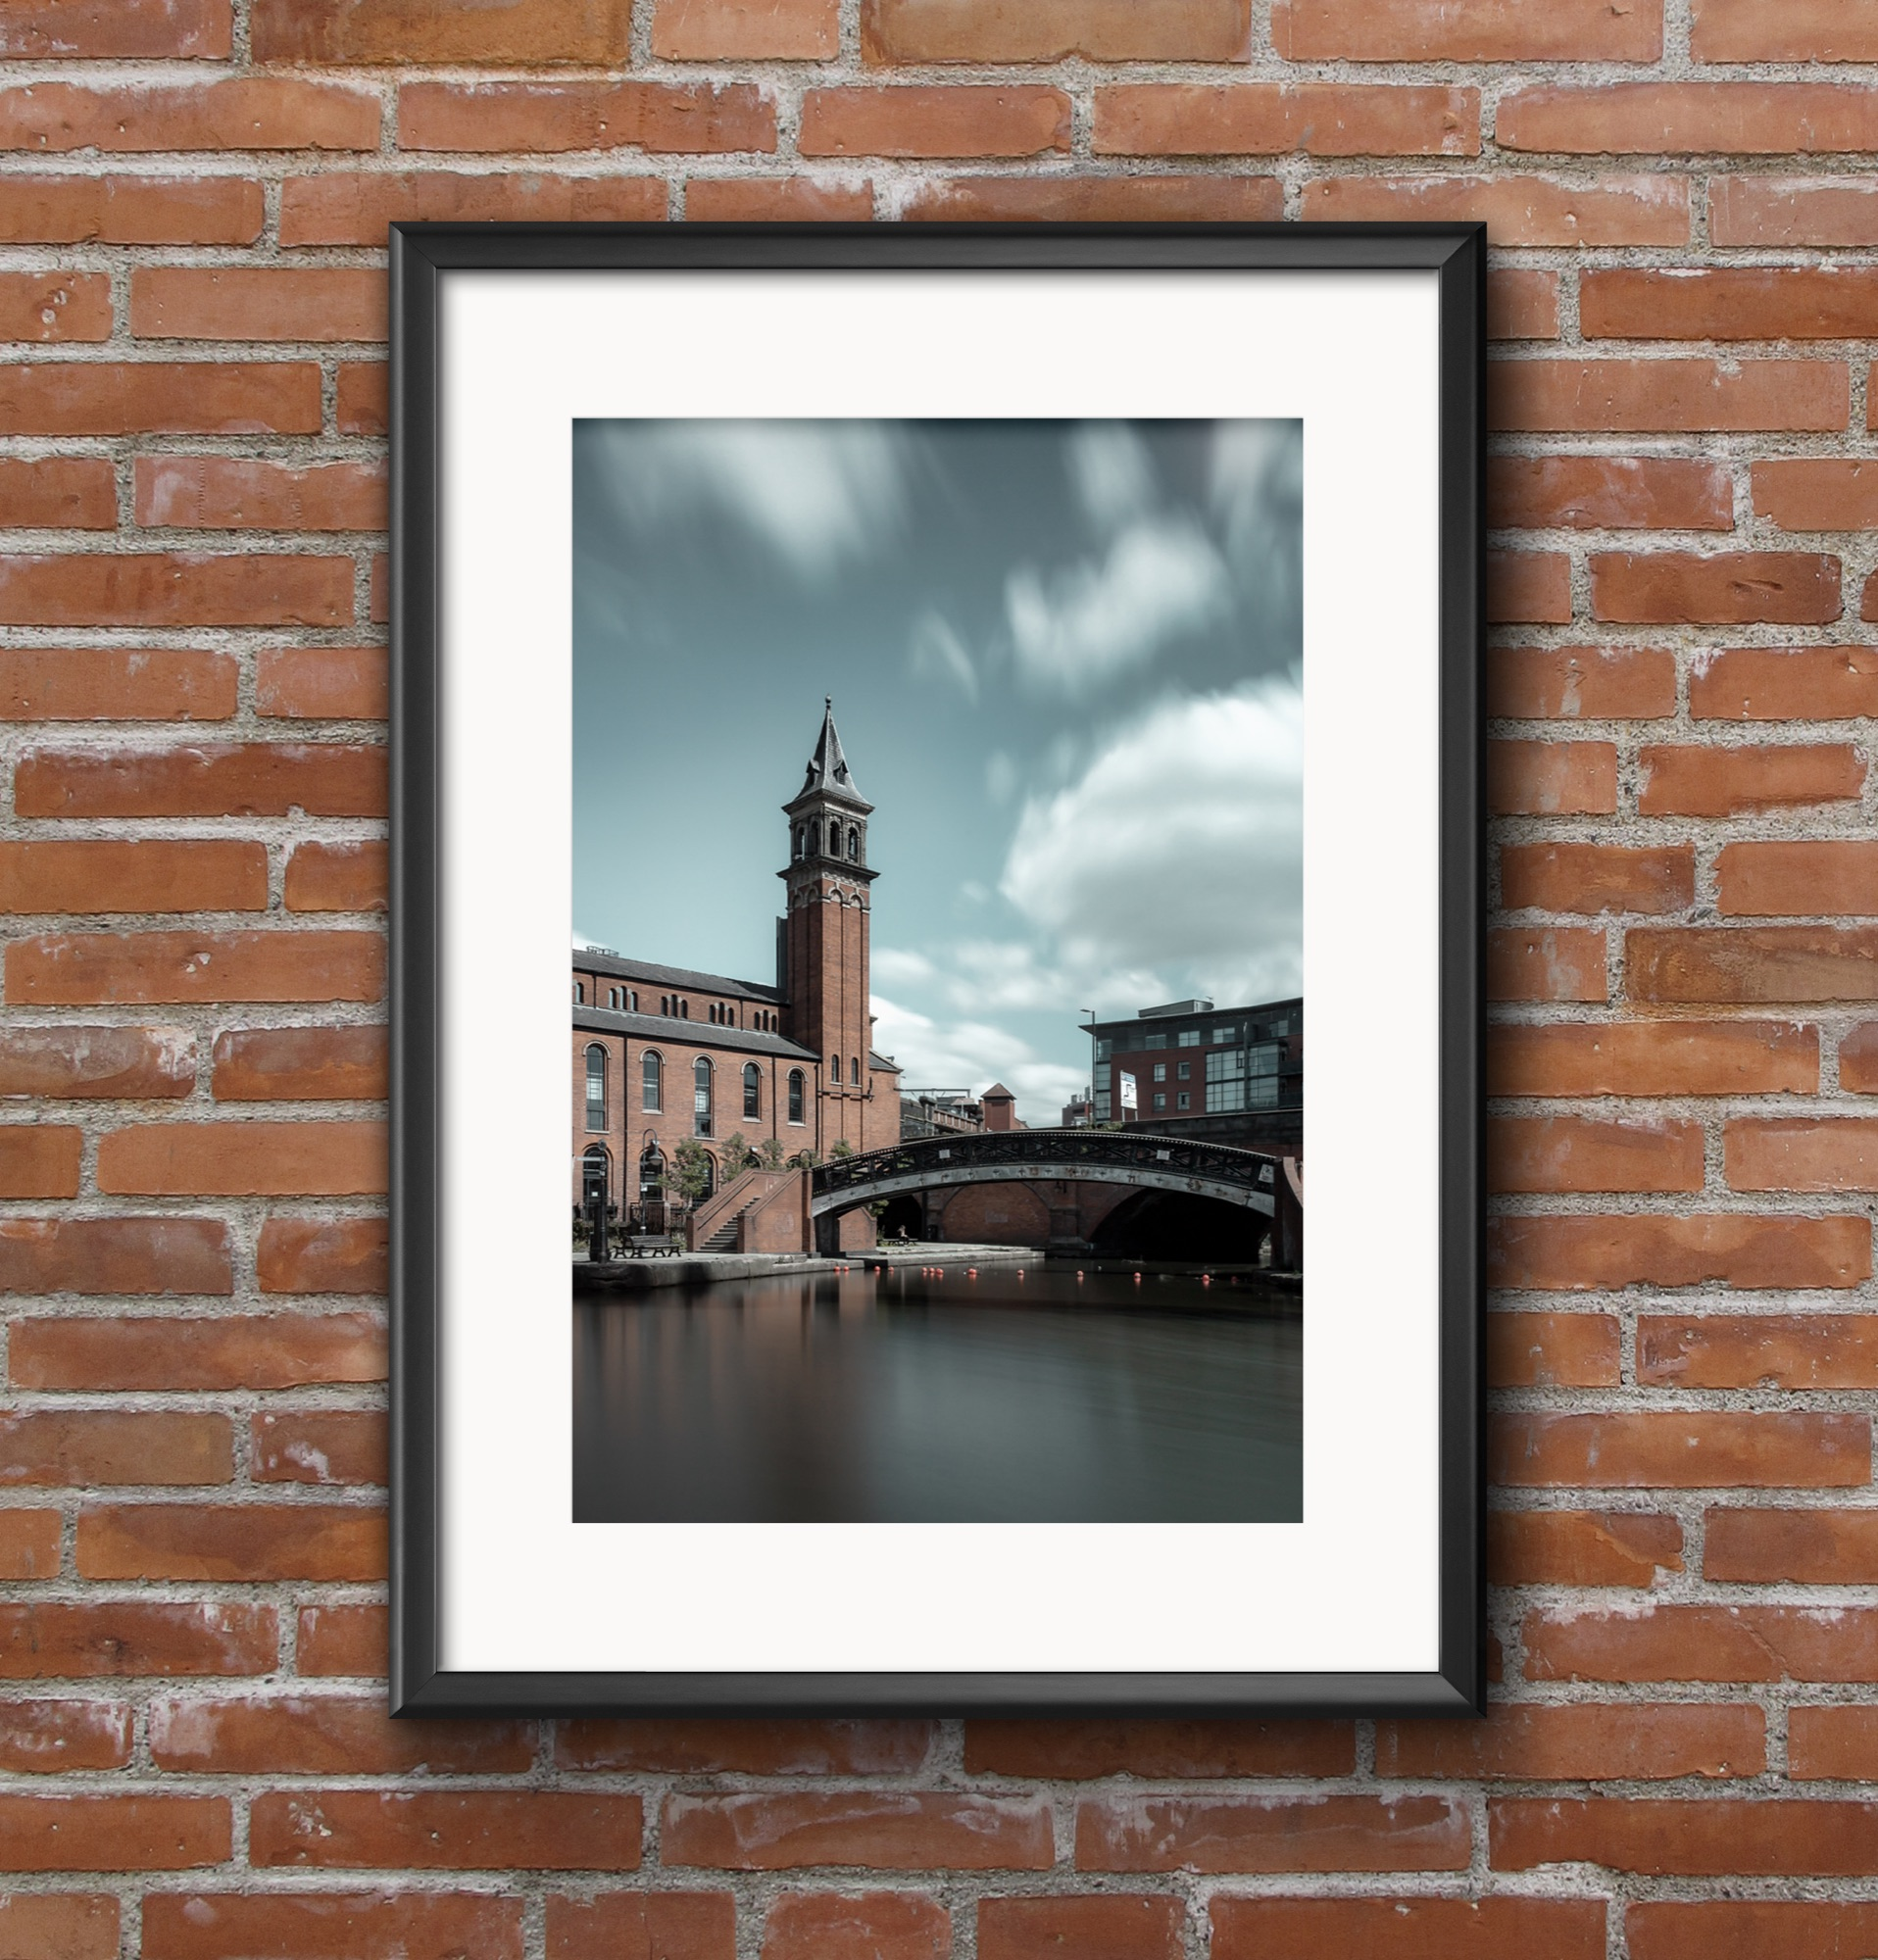 The grocers warehouse with tower, Castlefield canal, Manchester.